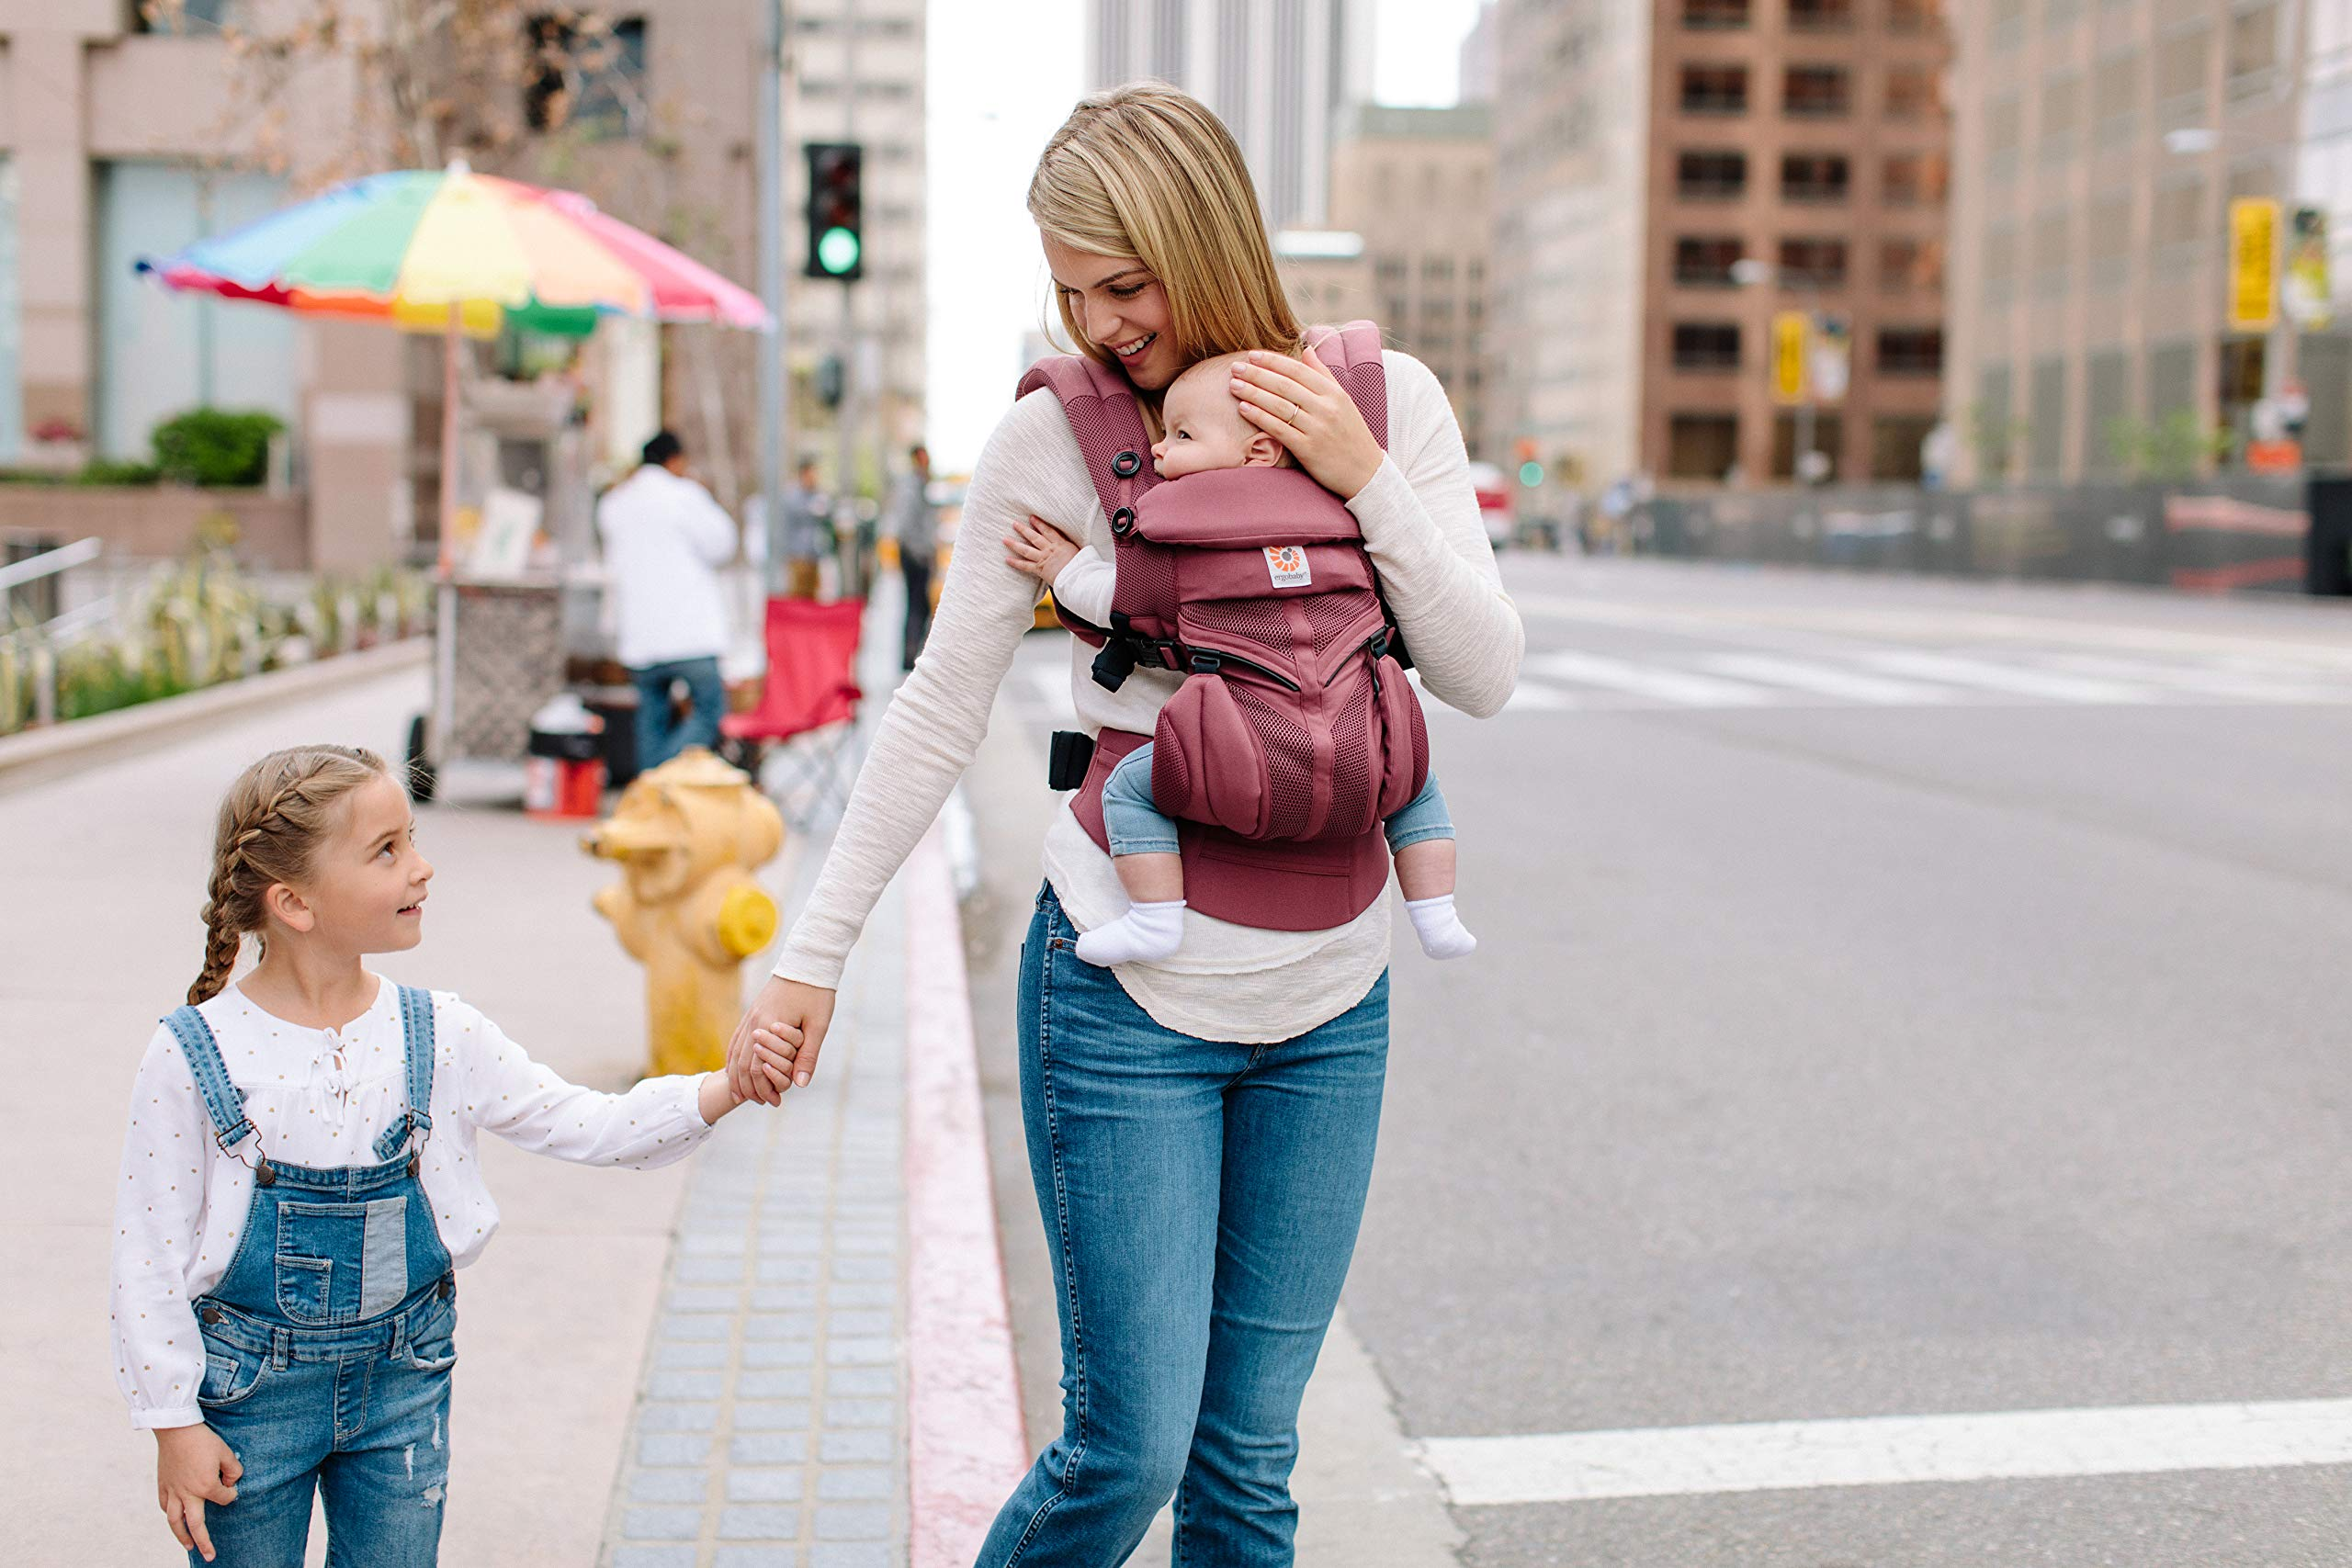 Ergobaby Baby Carrier for Newborn to Toddler, 4-Position Omni 360 Cool Air Plum, Breathable Ergonomic Child Carrier & Backpack Ergobaby BABY CARRIER FOR NEWBORN - Adapts to your growing baby from birth to toddler (7-45lbs). 4 carry positions: front-inward, back, hip, and front-outward. A Baby hood for sun protection (UPF 50+) & privacy for sleeping or breastfeeding is included. COMFORT - Exceptional lower back comfort with padded lumbar support waist belt & extra padded shoulder straps with the option to wear 2 ways: crossed or backpack style. Waist belt can be worn high or low to maximize comfort. COOL & BREATHABLE - Our Cool Air Mesh baby carriers are made with soft and durable mesh fabric that provides our renowned ergonomic support for baby while allowing for ultimate breathability and airflow 9